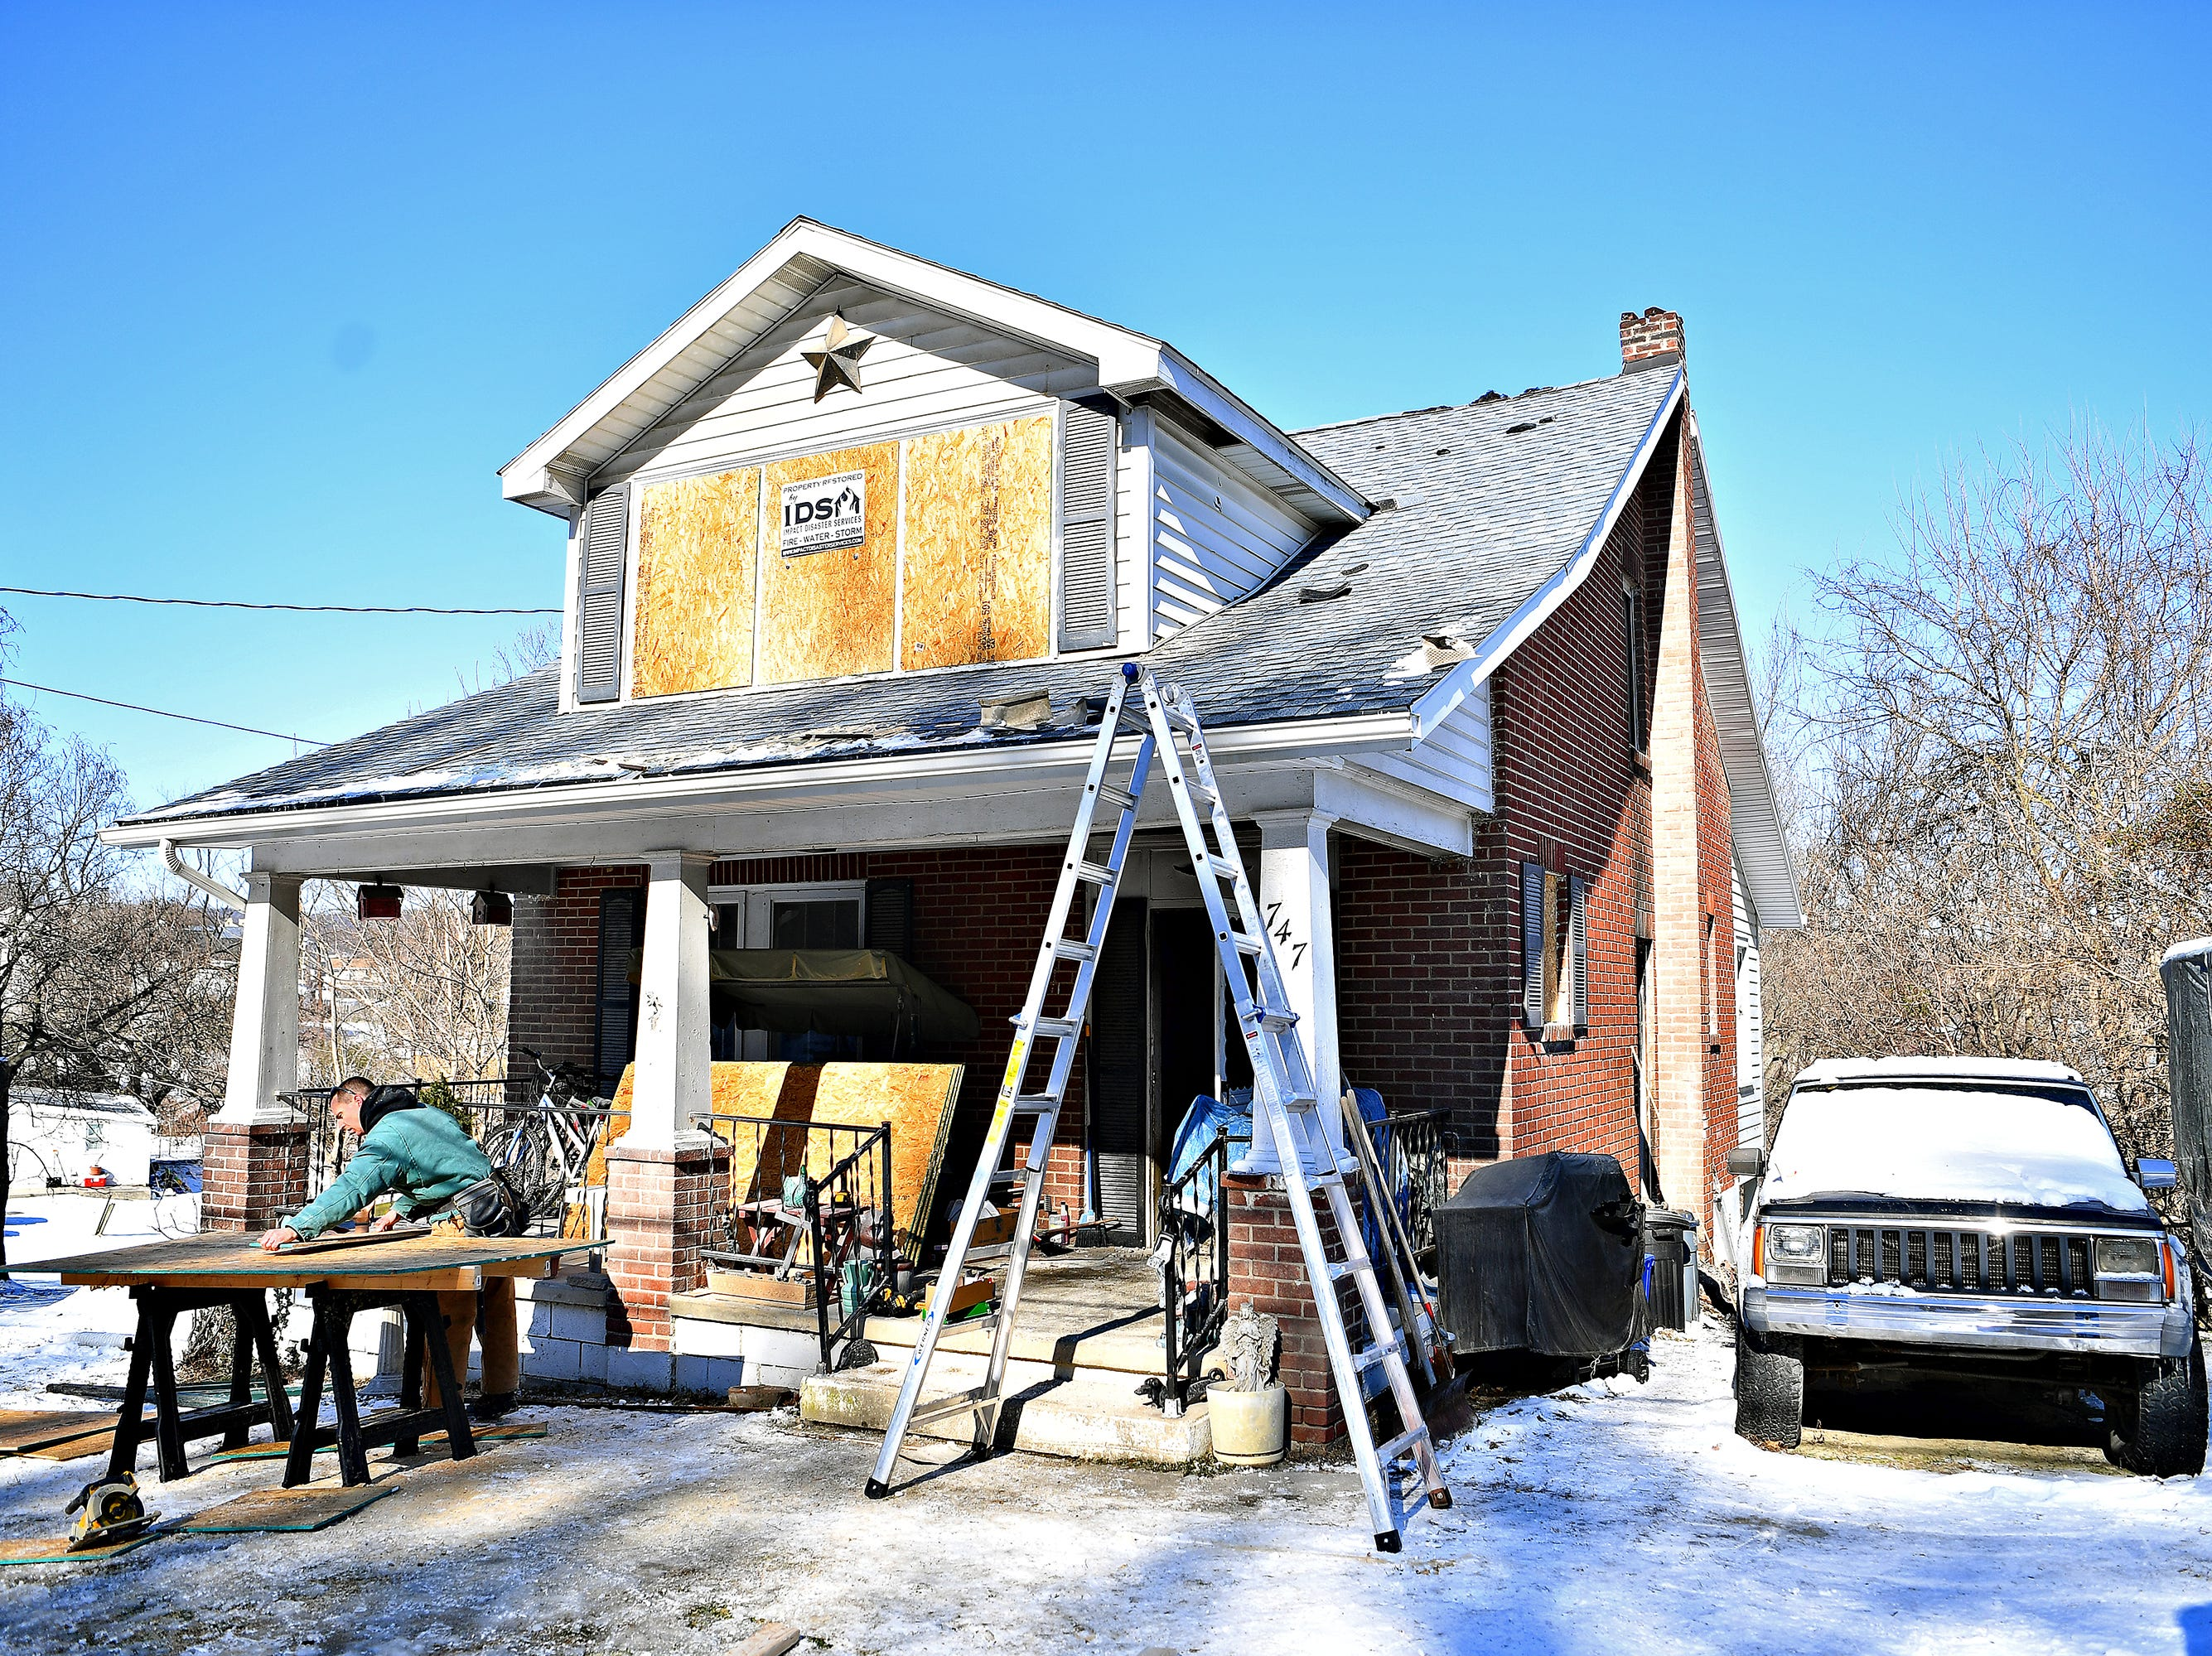 Jeremy Charles, with Impact Disaster Services, cuts boards to cover broken windows to secure a home in the 700 block of South Front Street that was damaged in an early morning fire in Wrightsville, Thursday, Jan. 31, 2019. Dawn J. Sagert photo